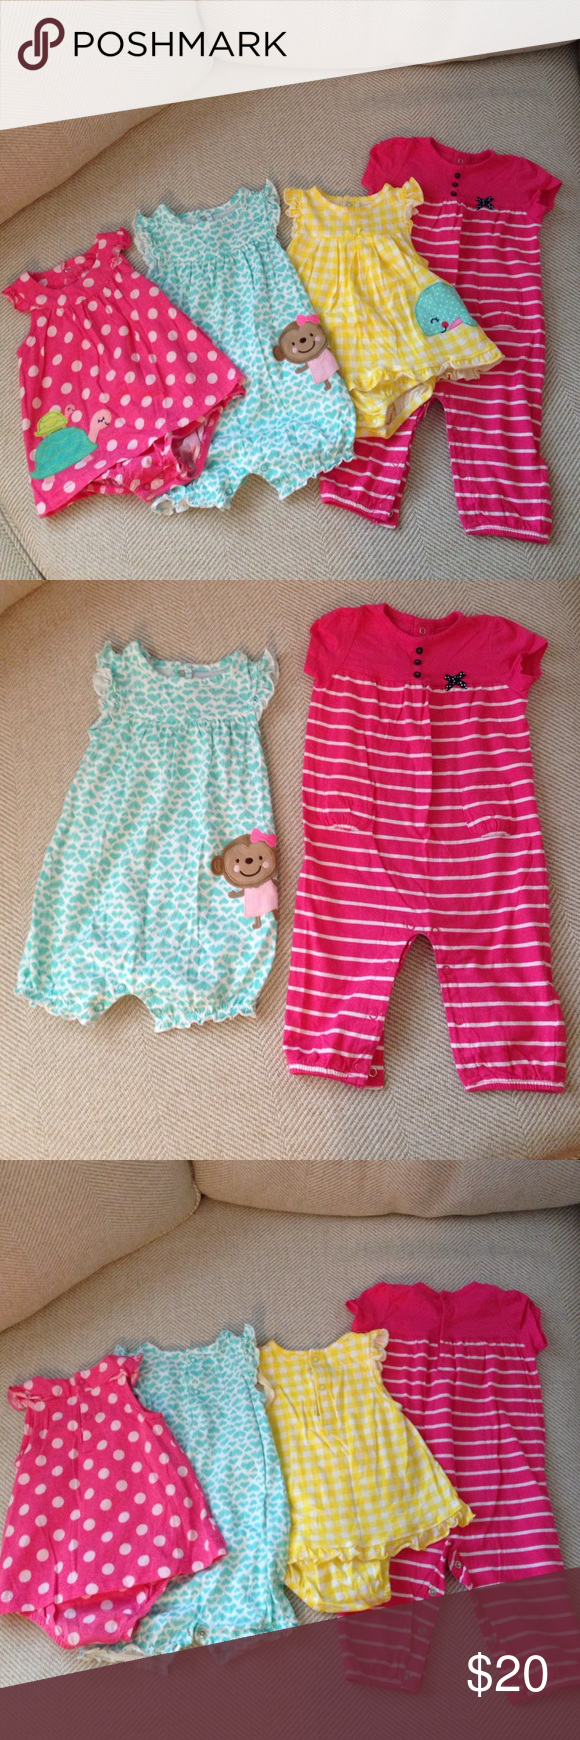 Baby Girl 12 Month Summer - 4 outfits 4 summer outfits for baby girl, all 4 are 12 month size.  All in great condition, no stains and only worn a few times.  Dress onesies Carters Child of Mine. Pink one piece Carters.  Blue one piece Just One You Carters. Carter's One Pieces Bodysuits